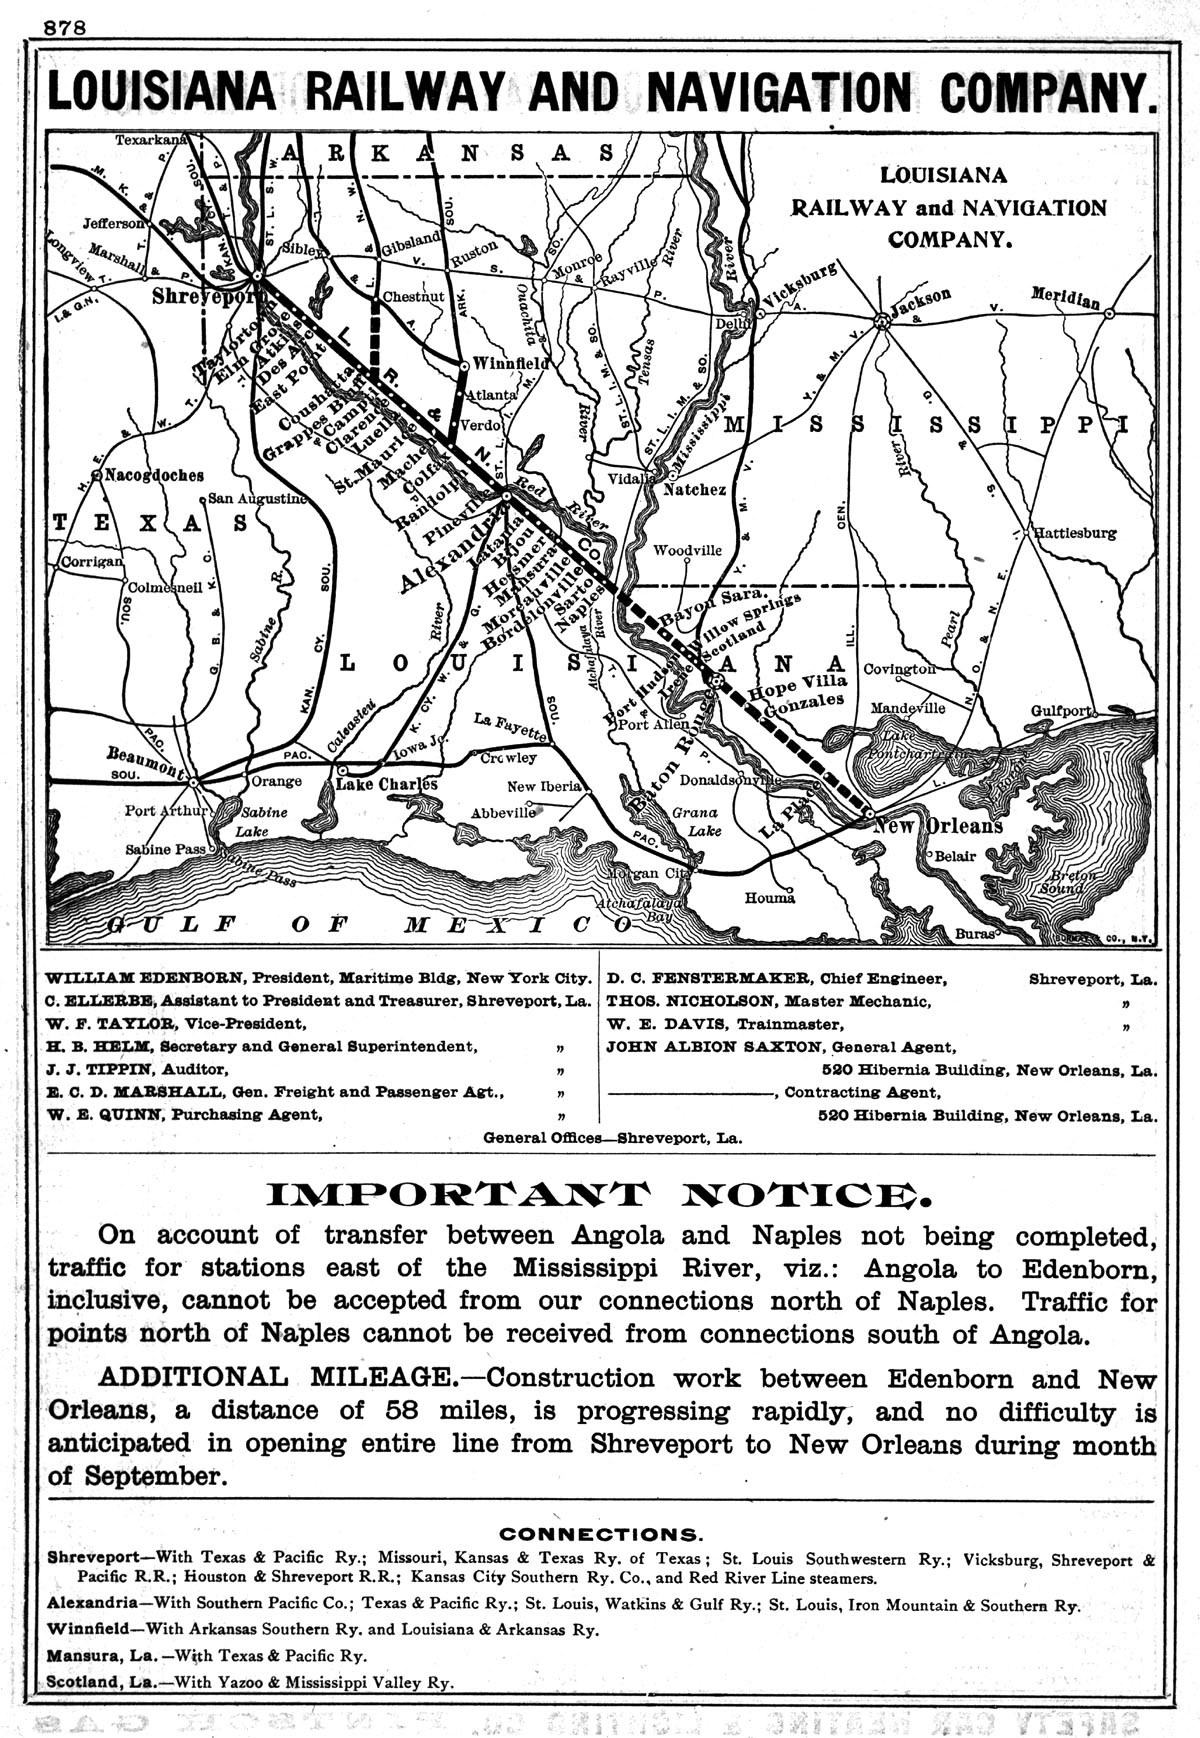 Railway Navigation Company Public Timetable and Map Showing Route